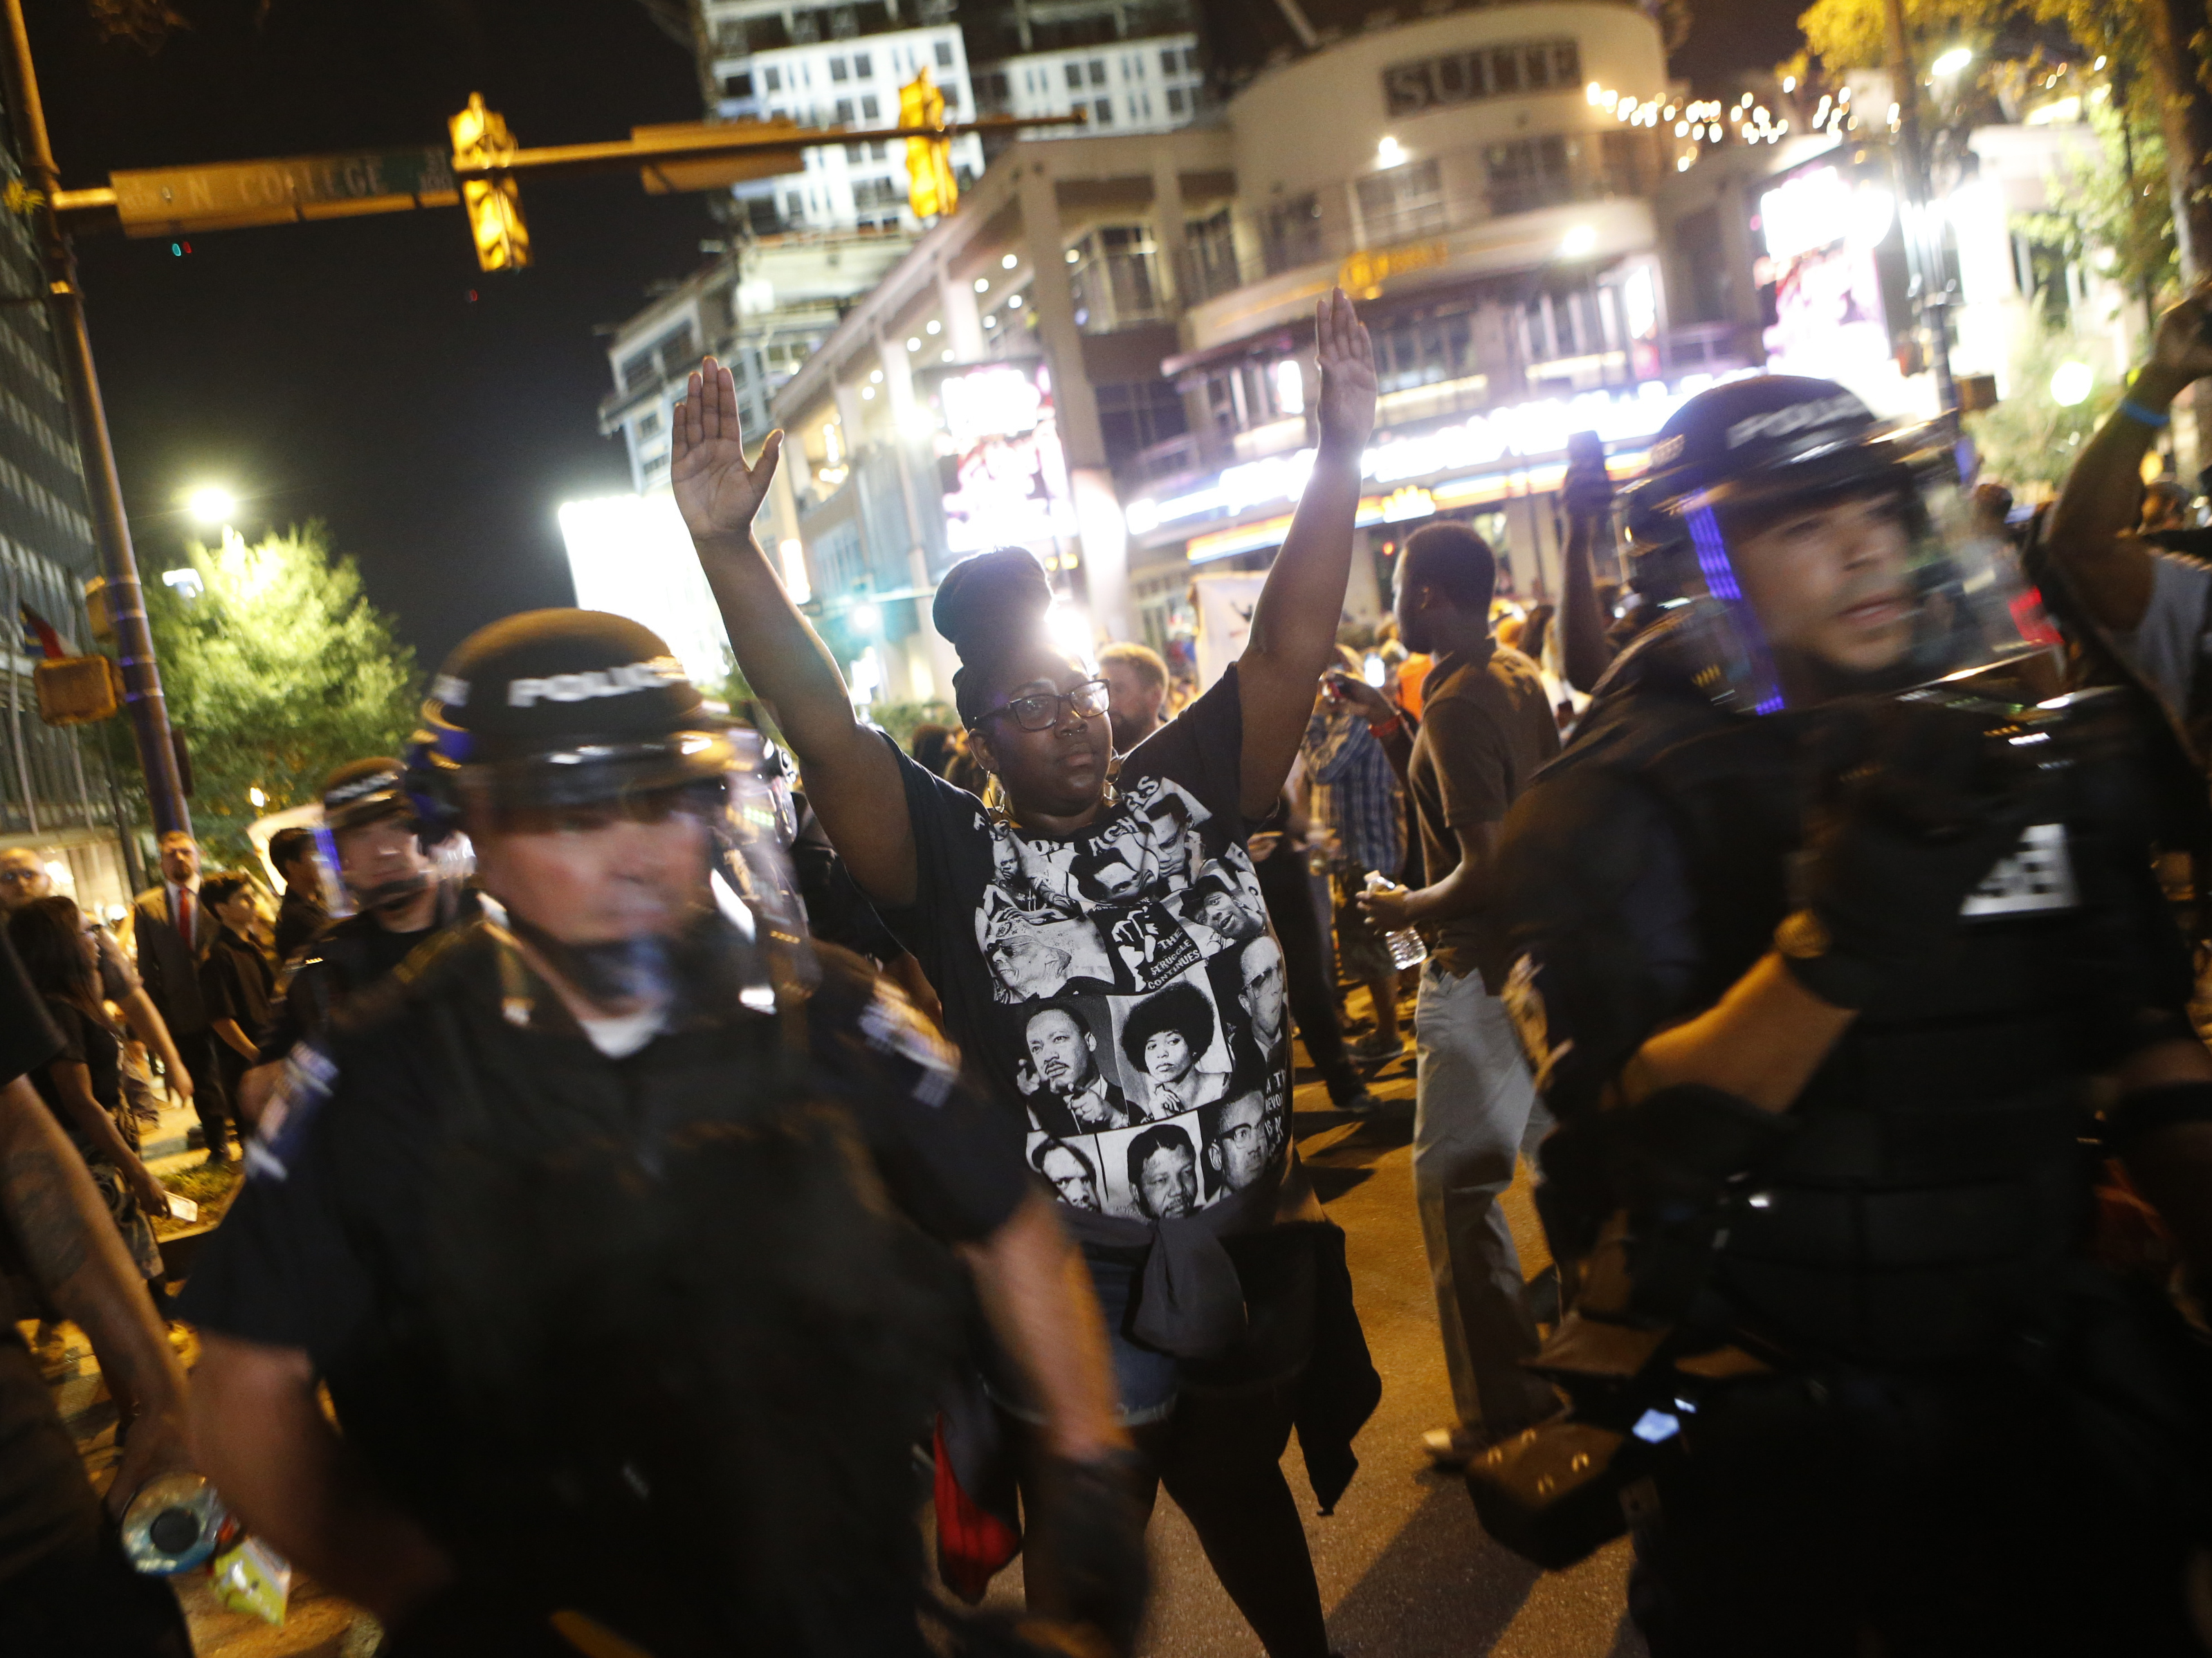 Charlotte protests: State of emergency declared after violent clashes